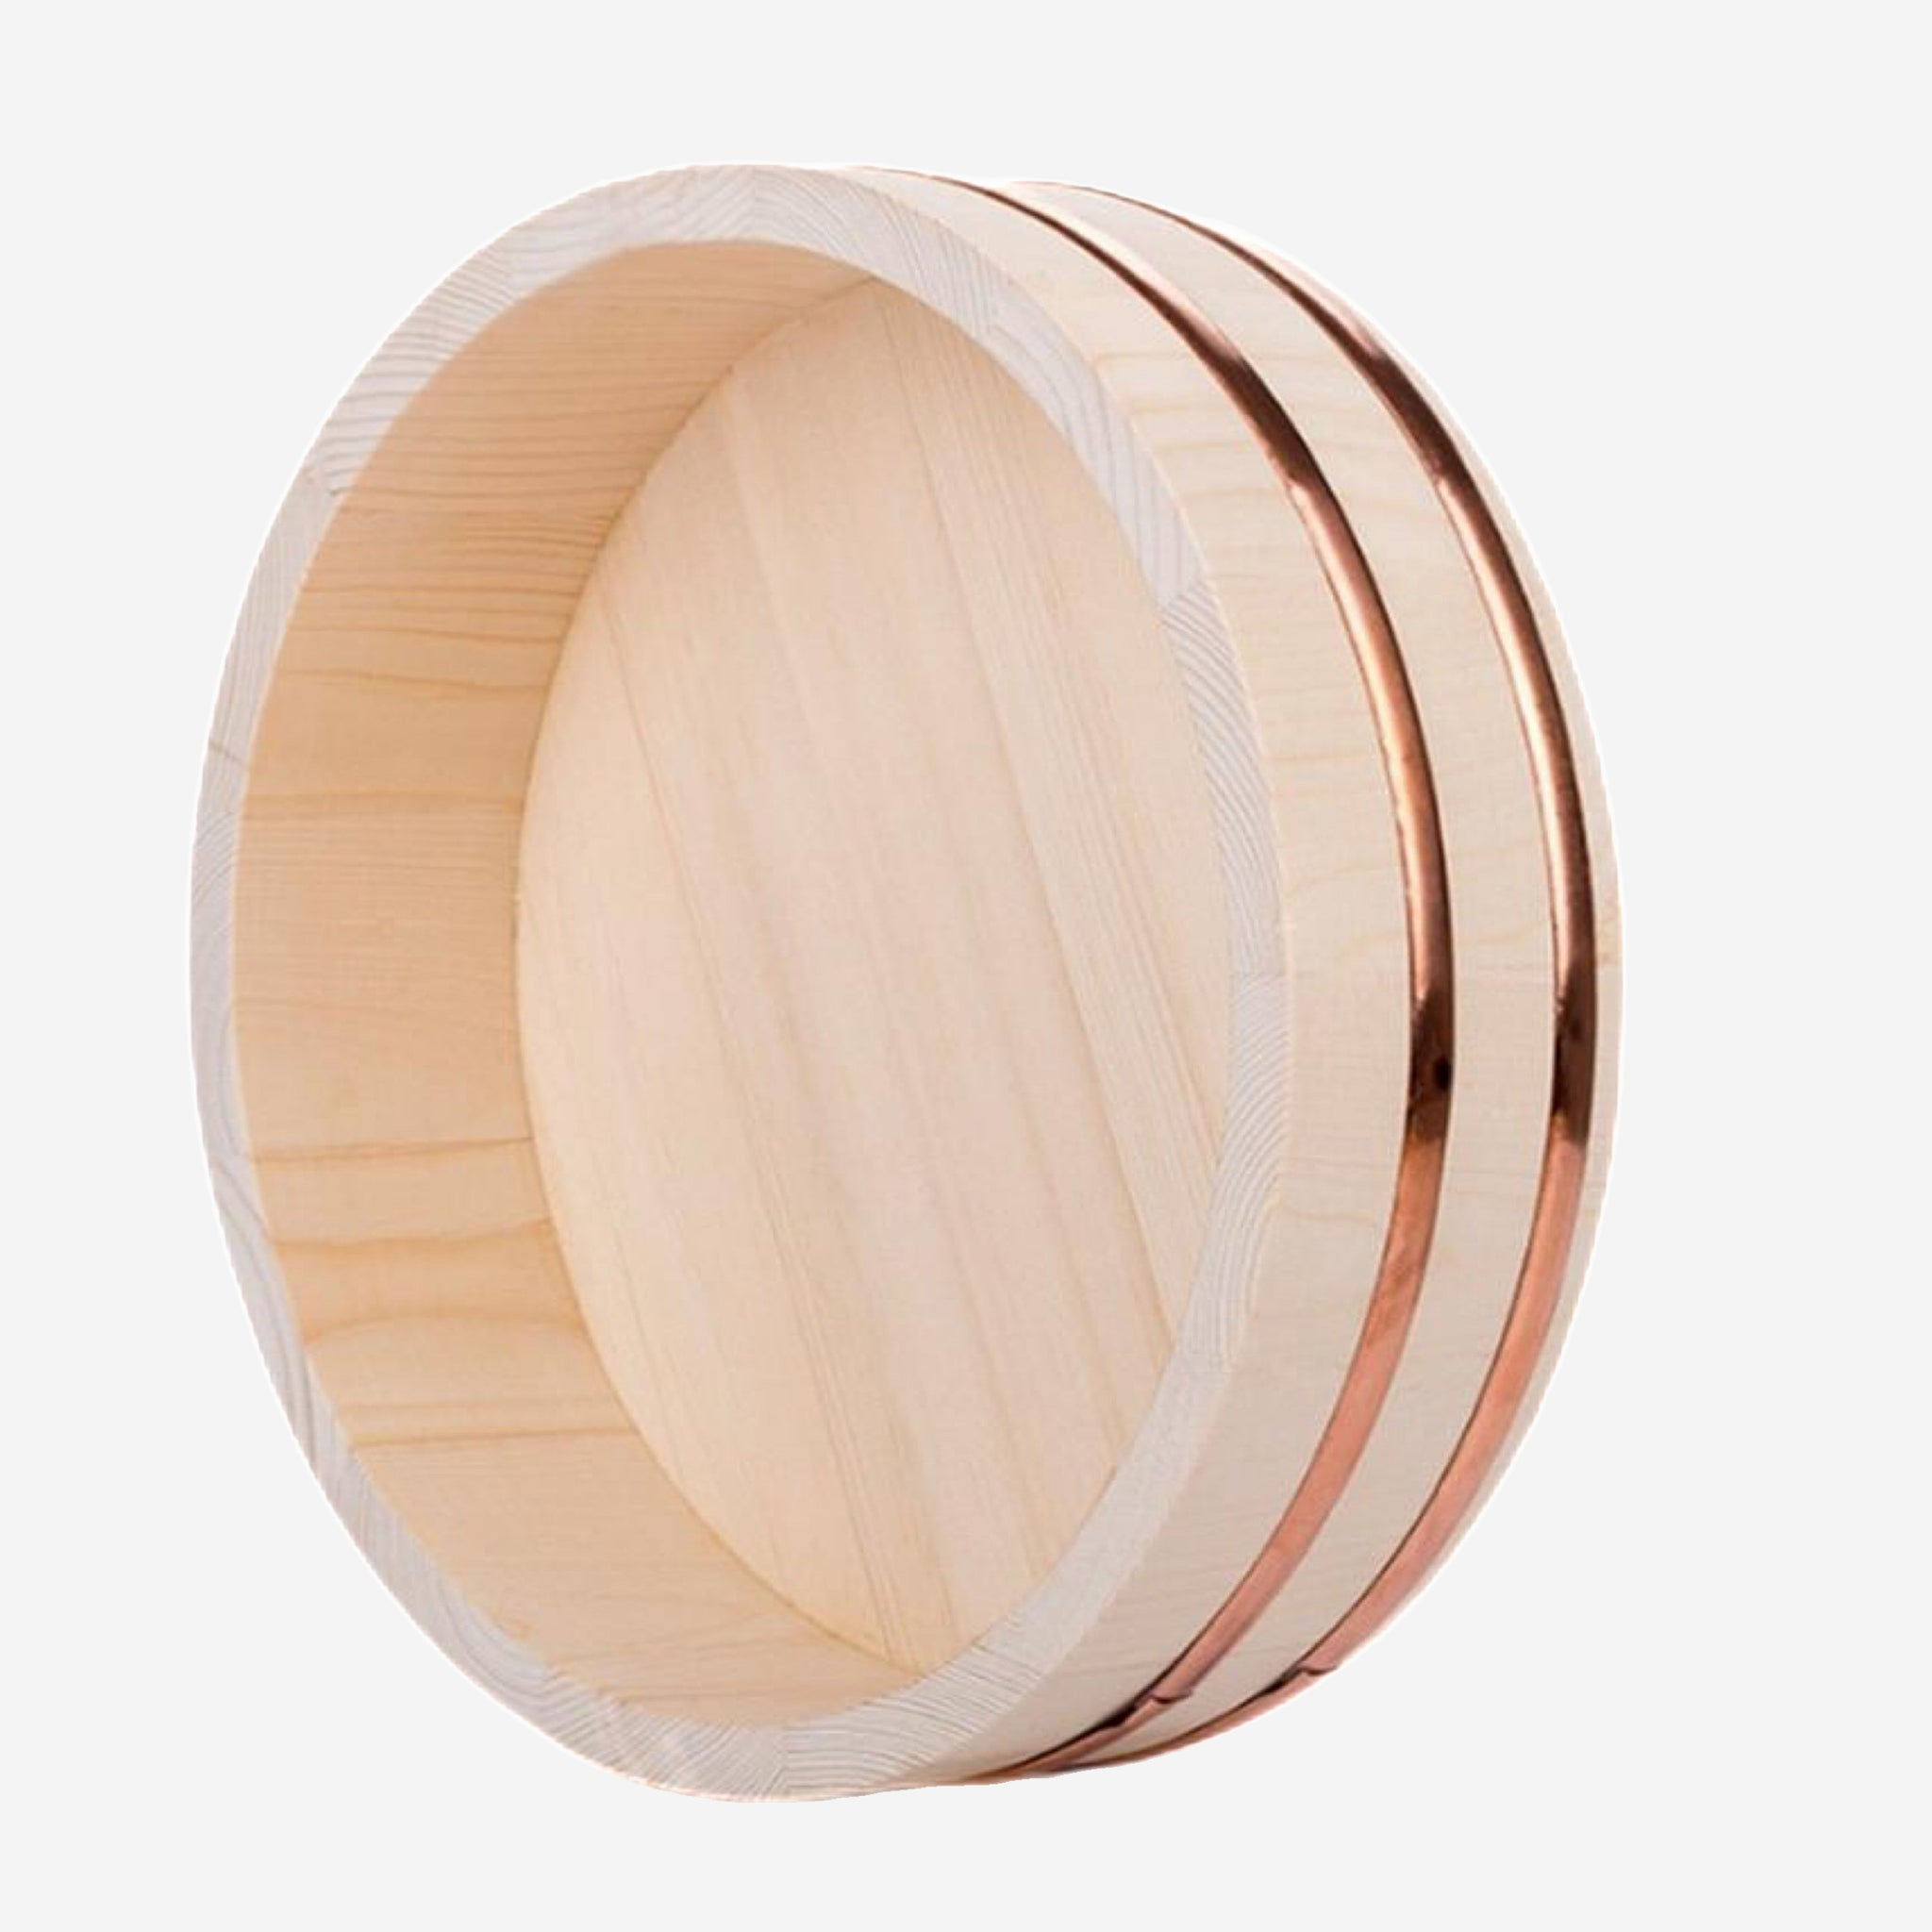 Japanese Wooden Mixing Serving Bowl Trend